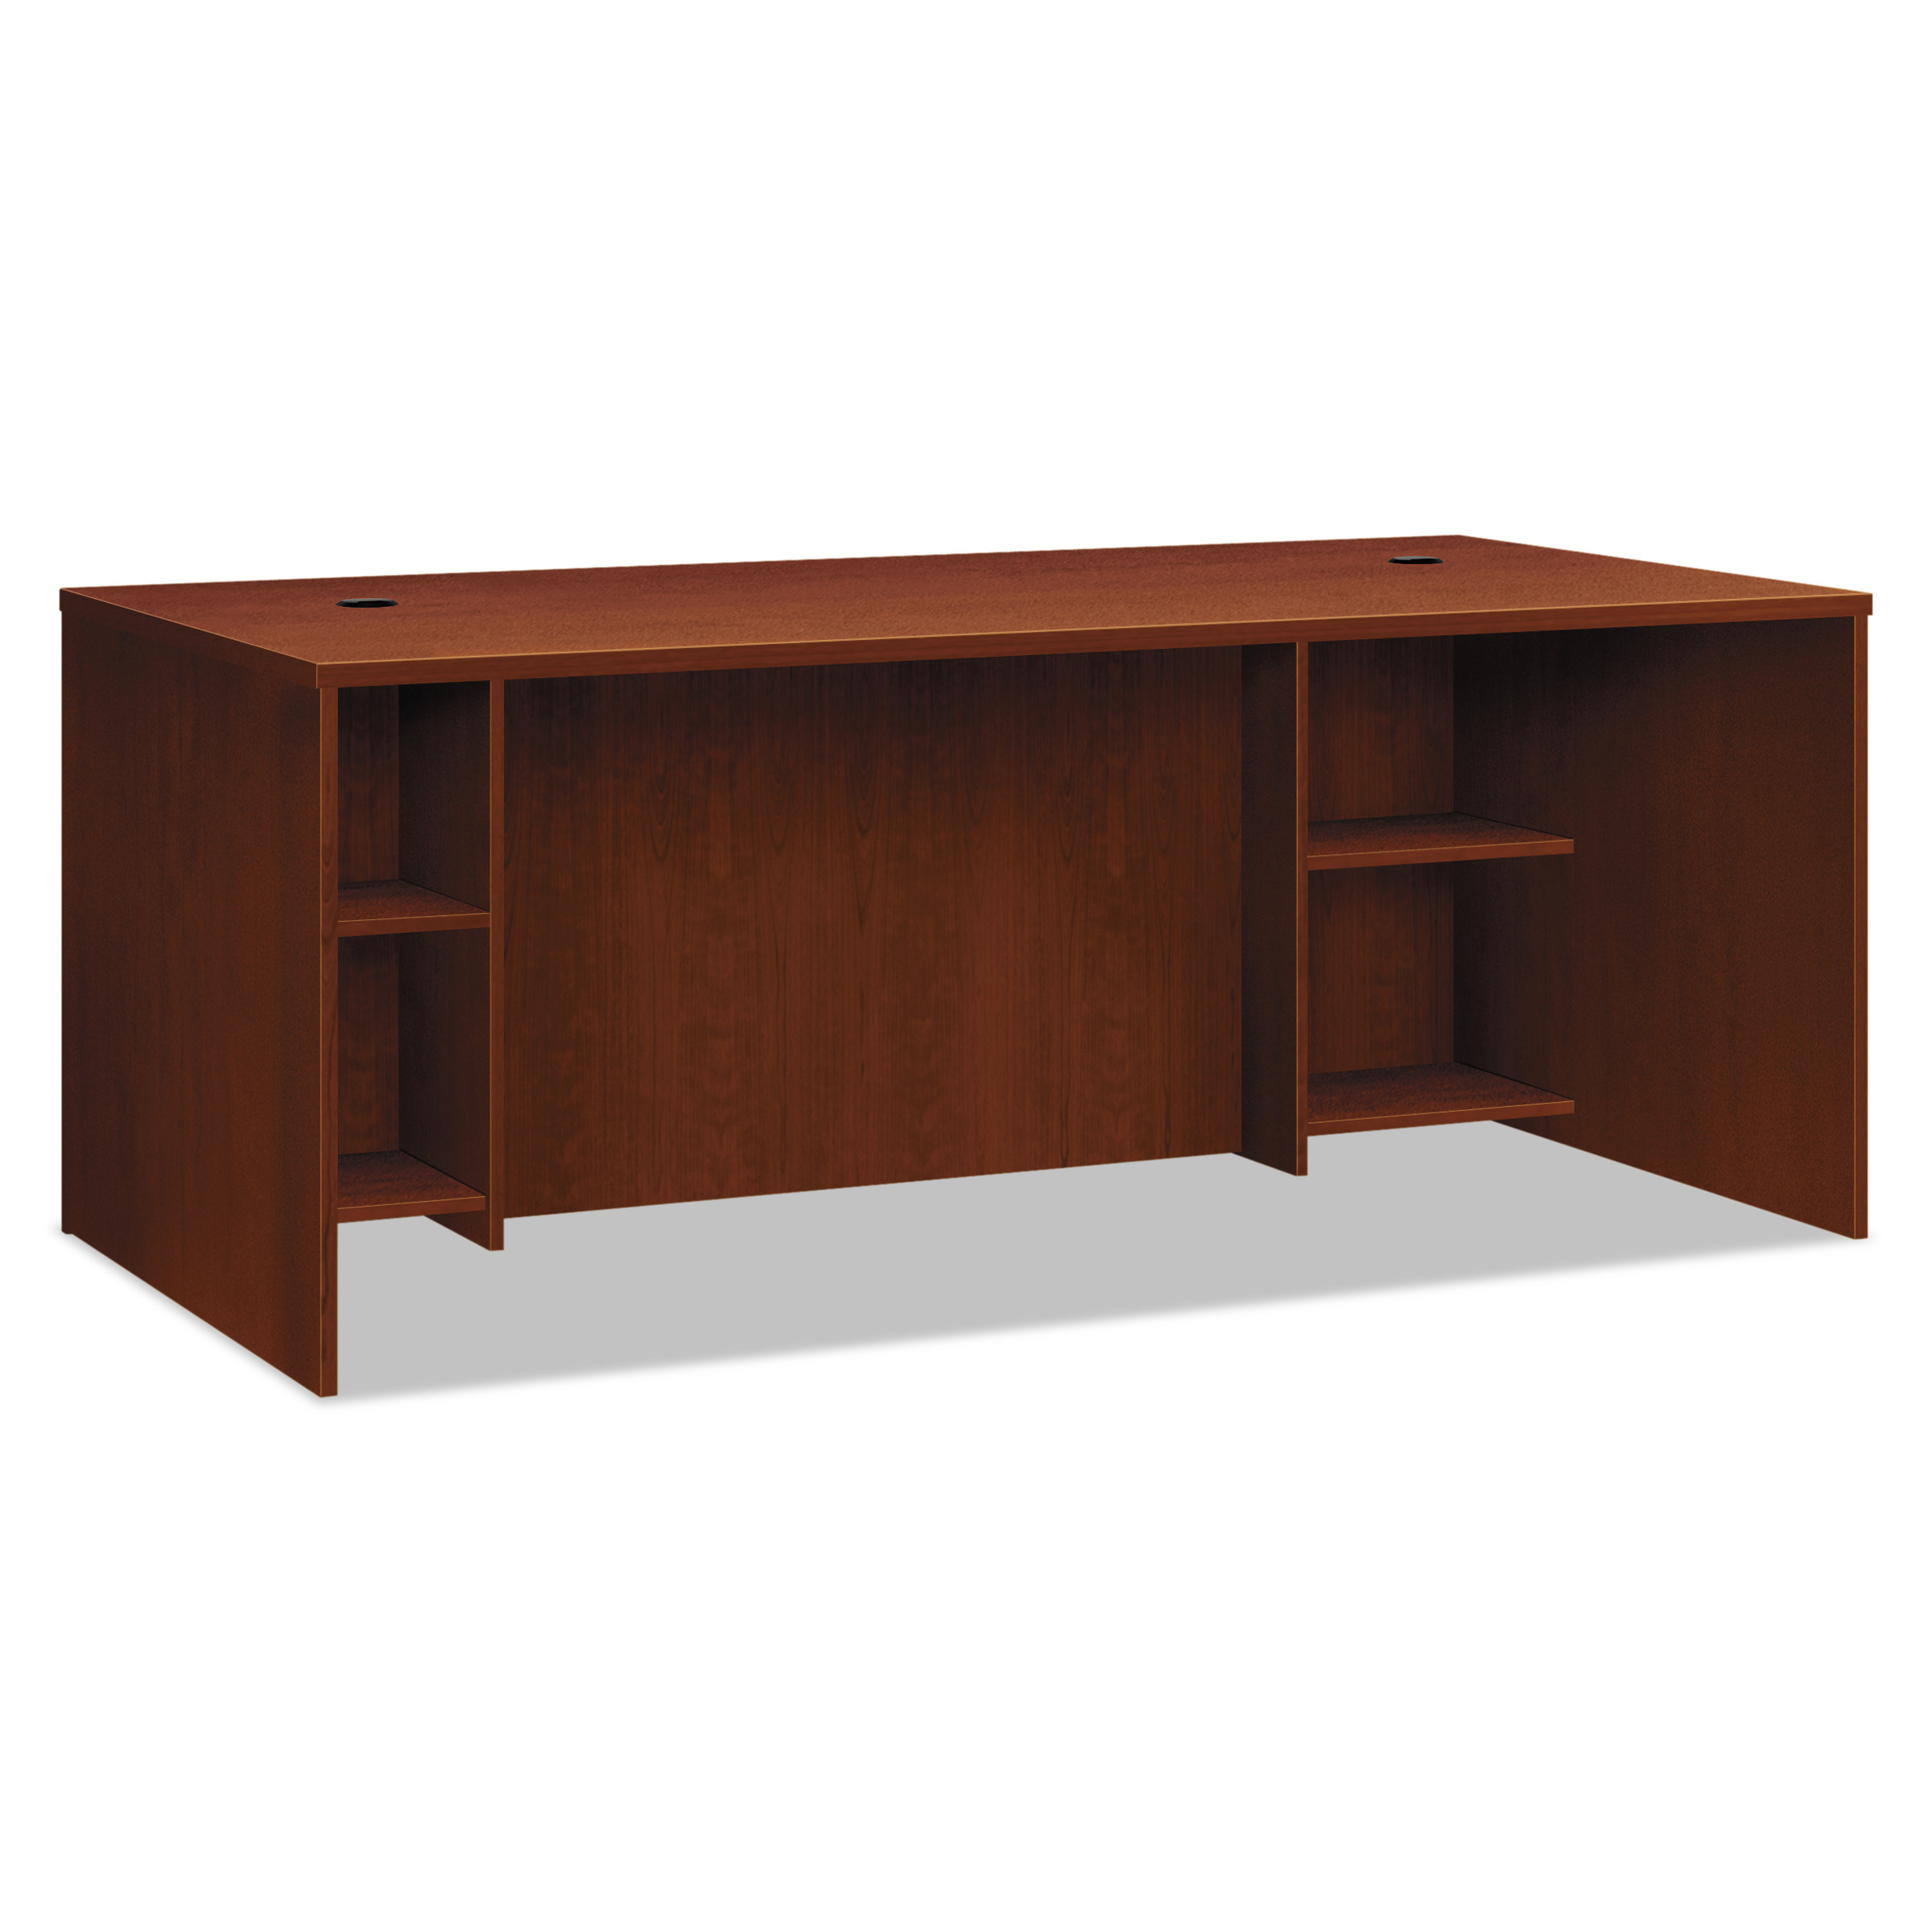 Basyx Bl Laminate Series Breakfront Desk Shell 72w X 36d